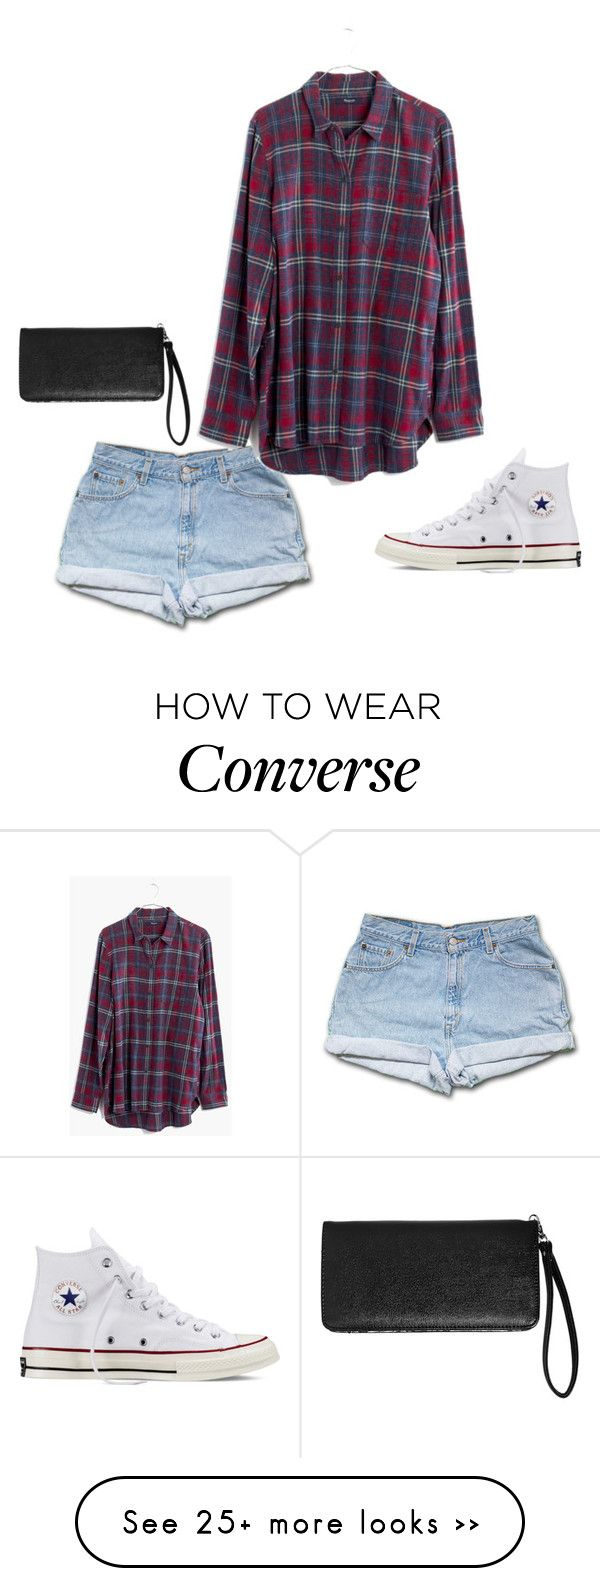 """""""Untitled #90"""" by monicahong on Polyvore featuring moda, Madewell, Converse e Avenue"""